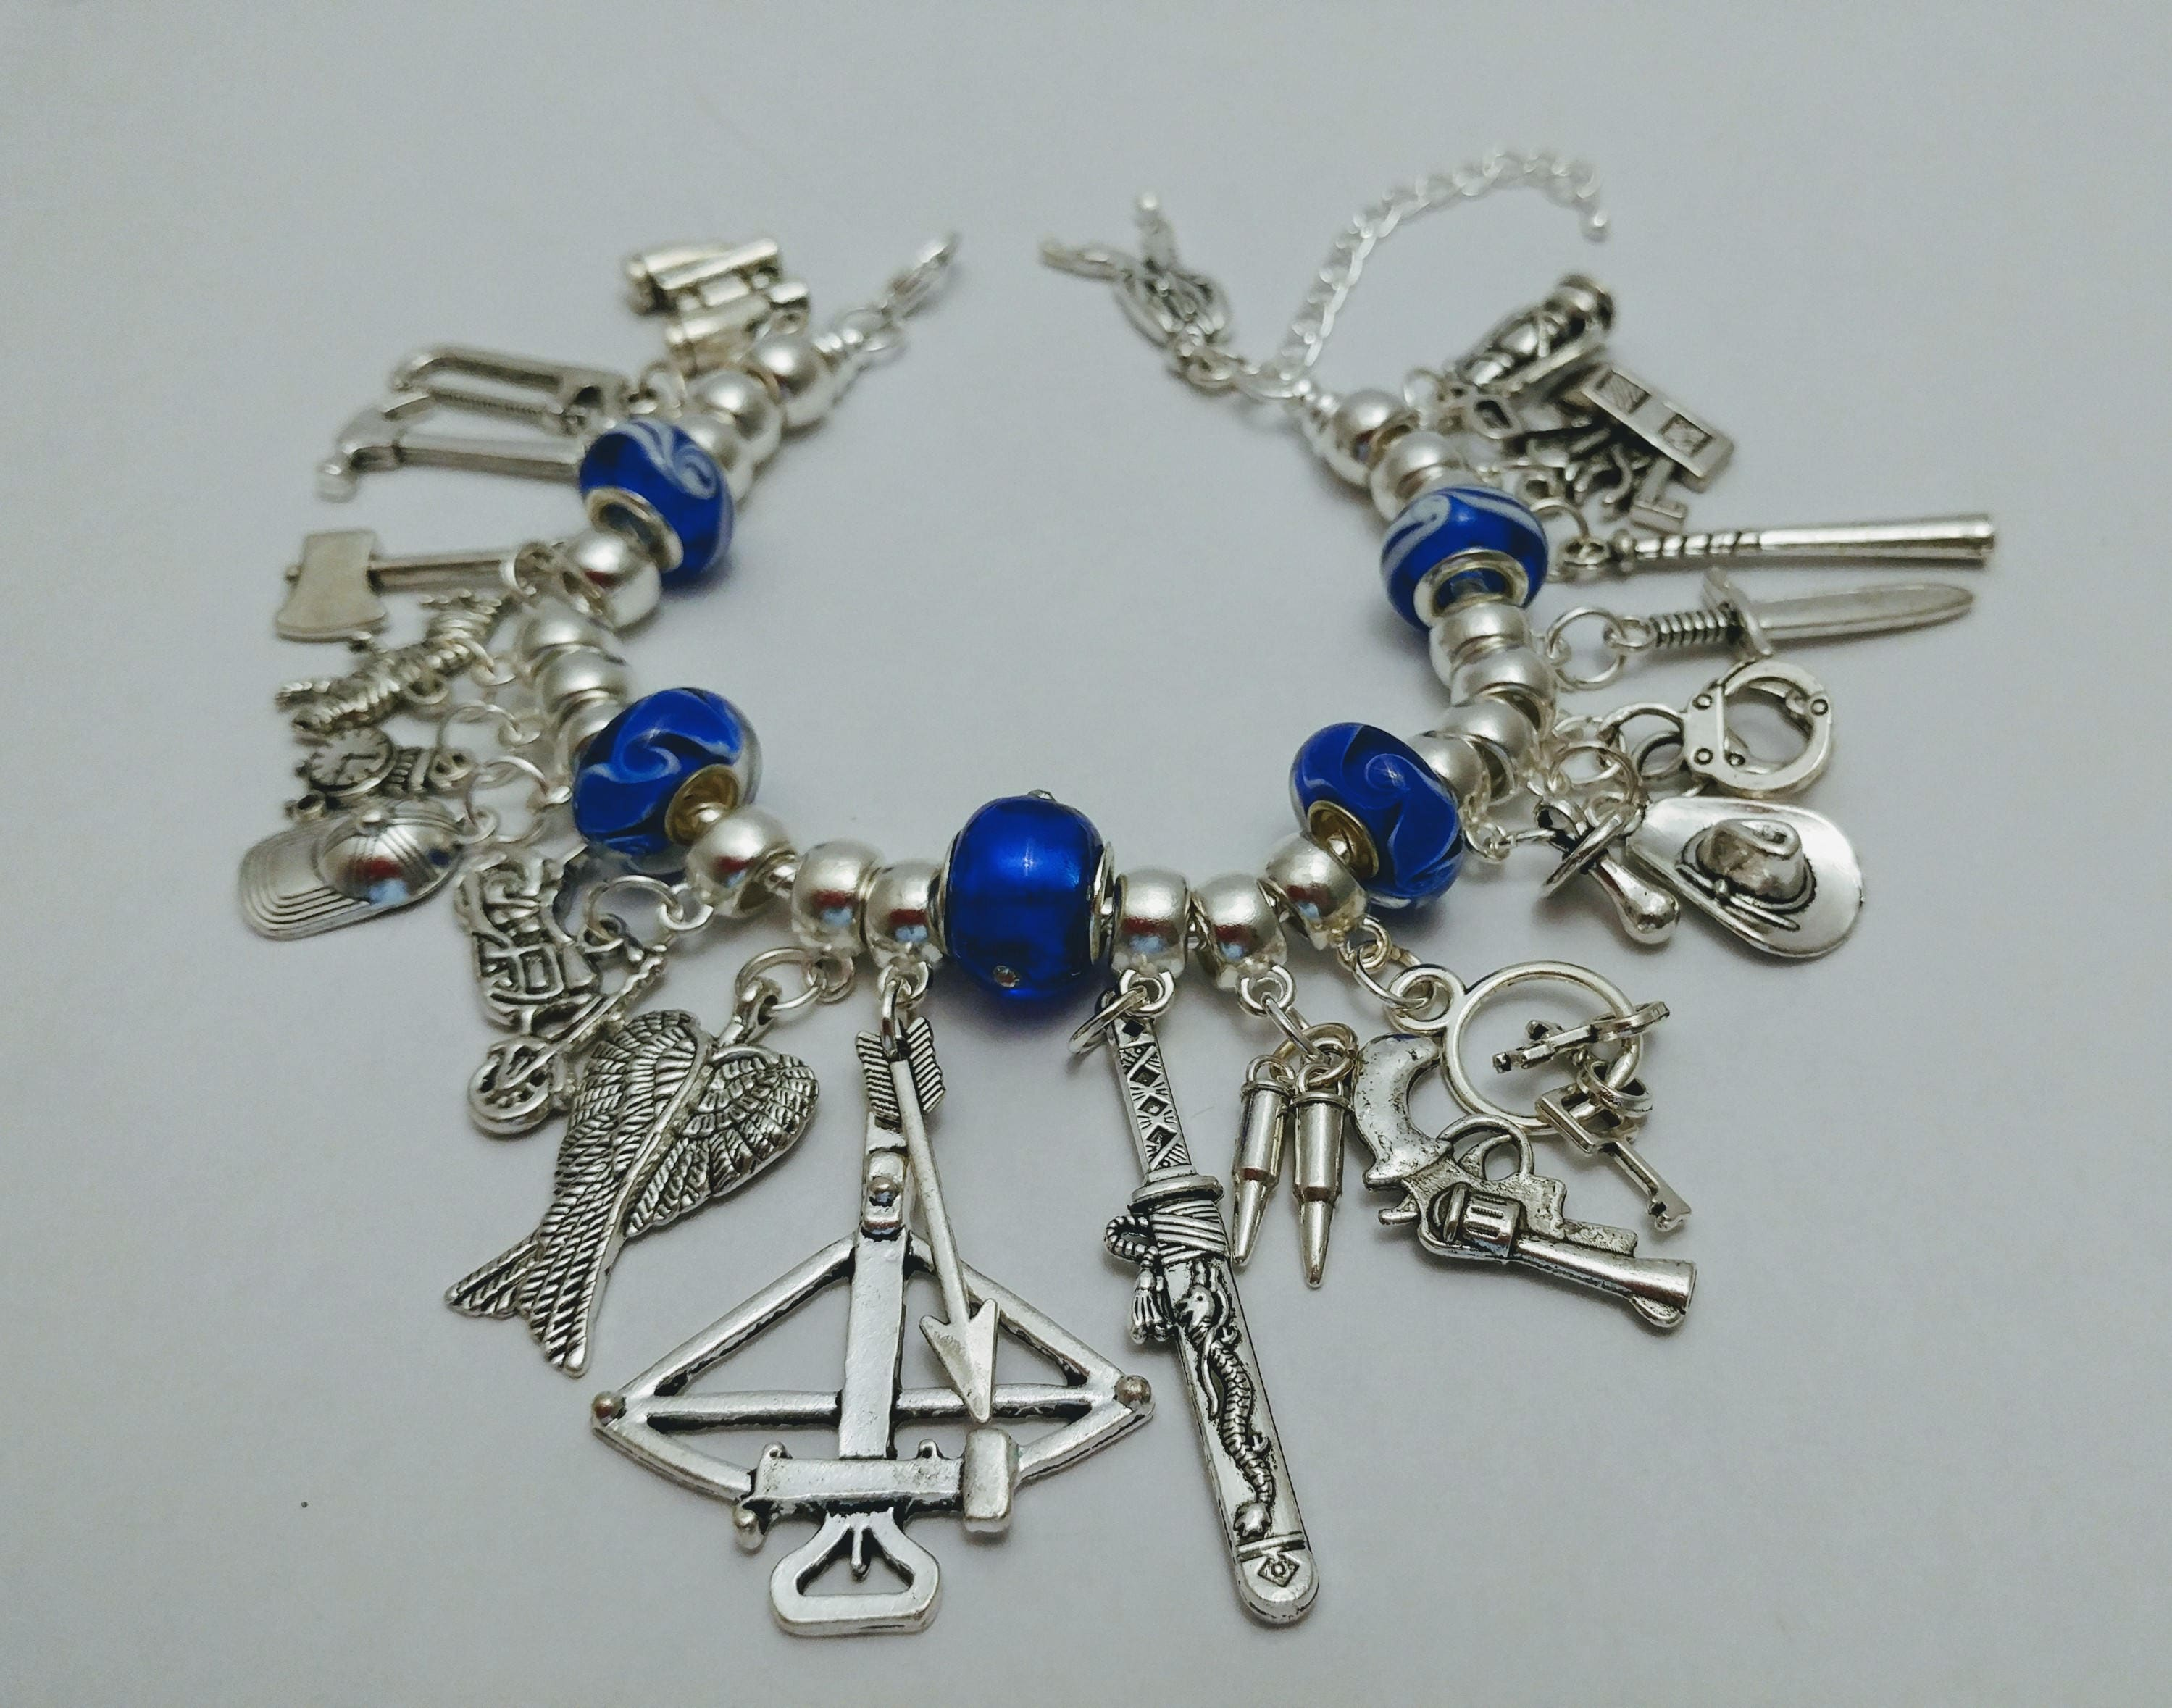 the walking dead charm bracelet with blue beads